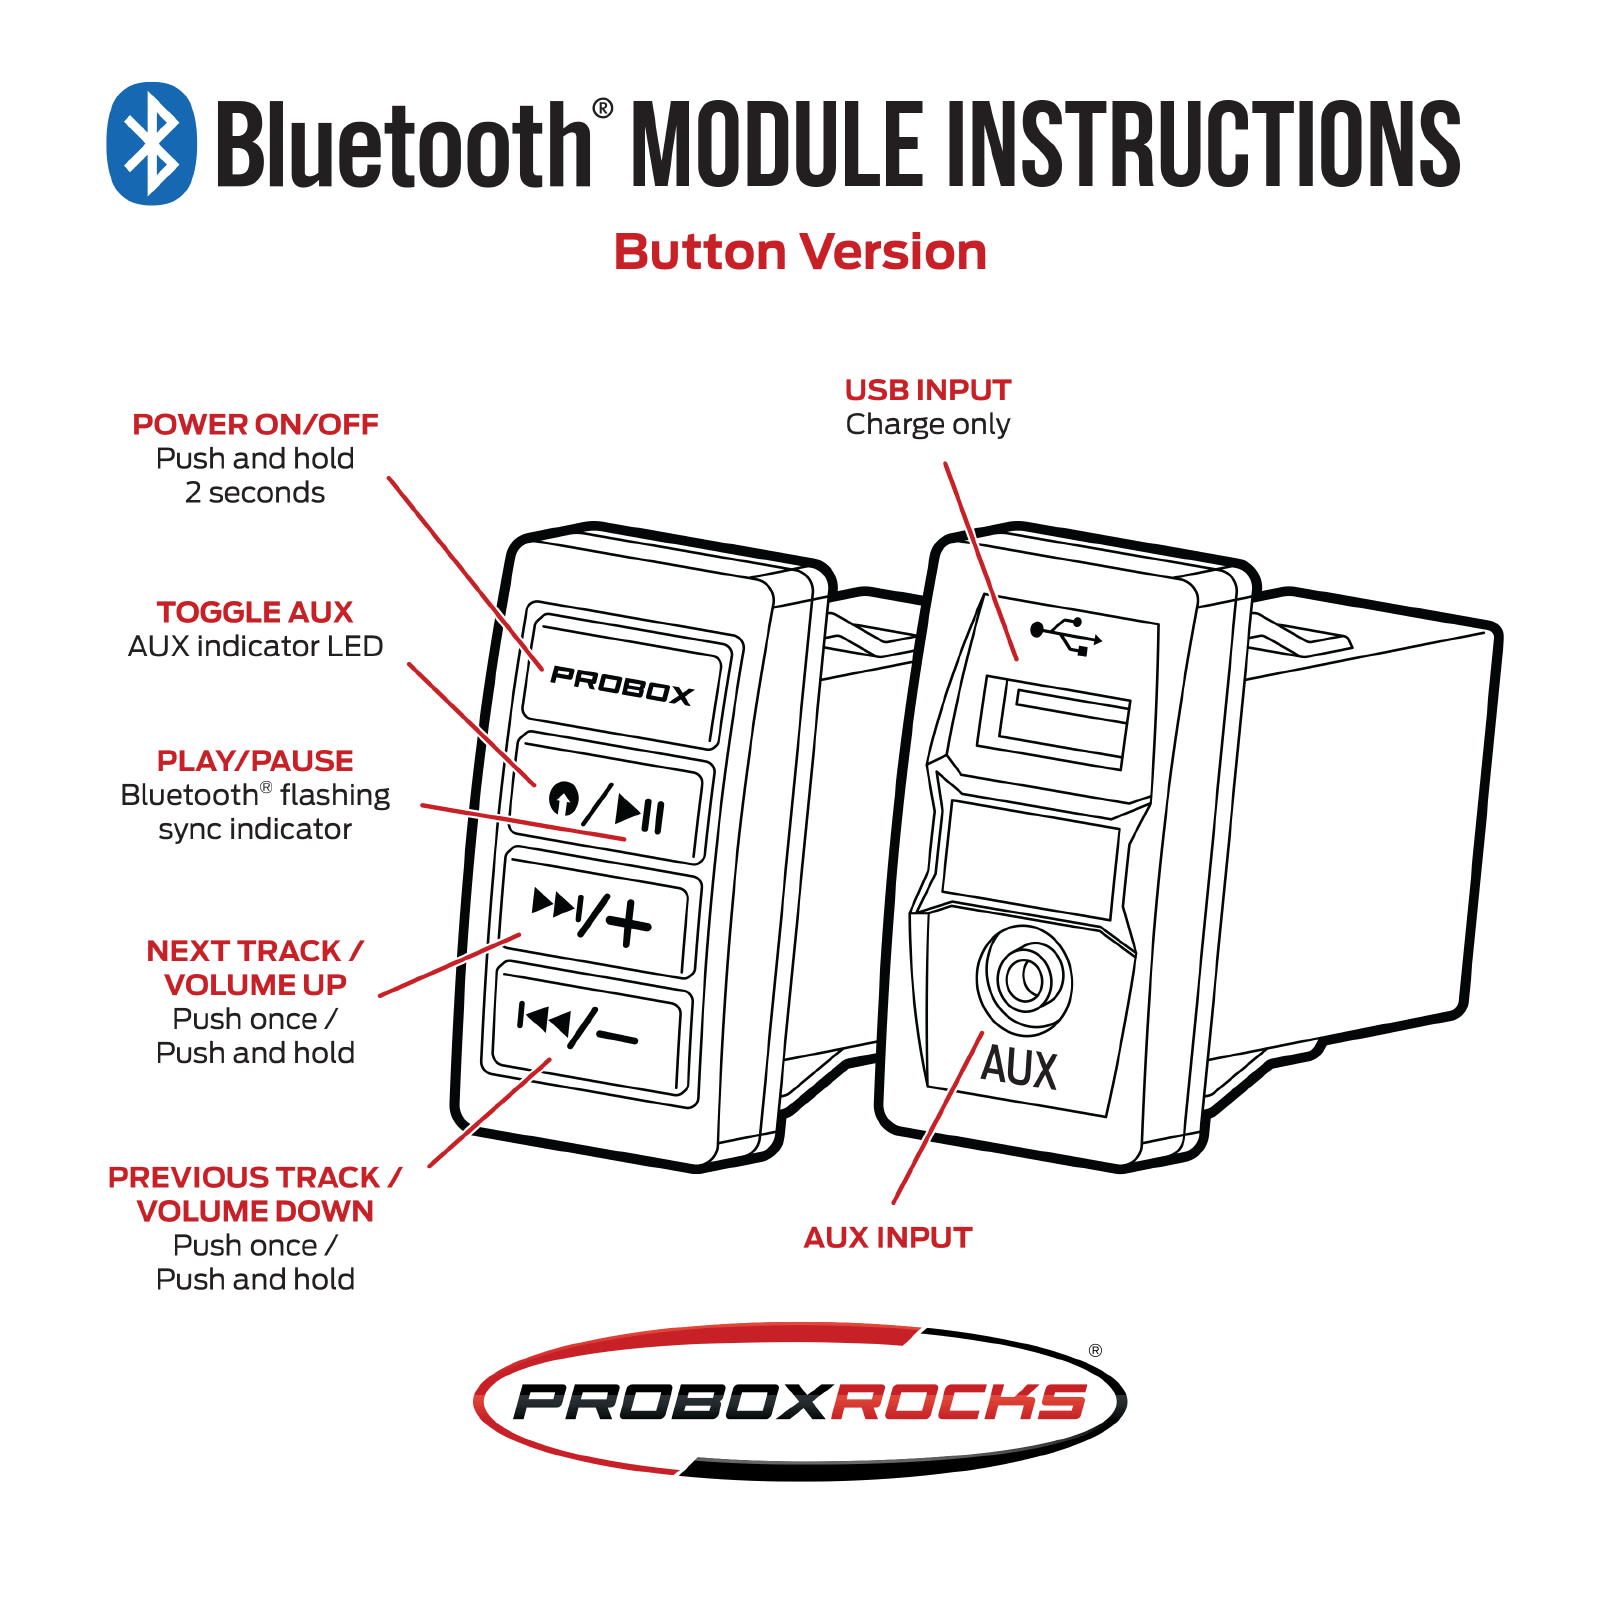 Bluetooth button module instructions